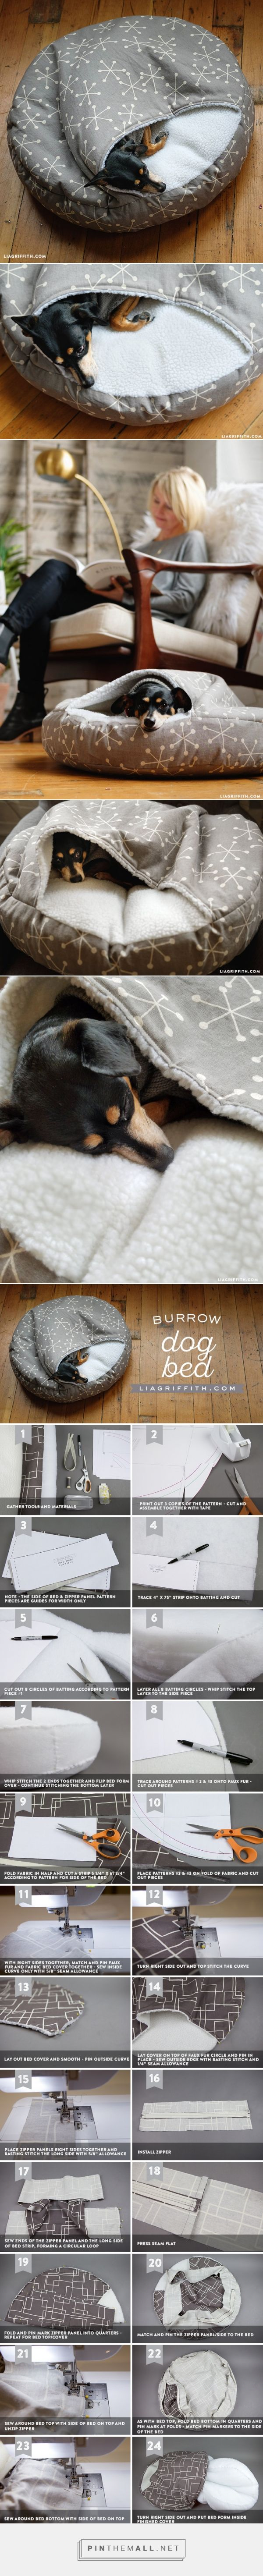 DIY Pet Bed - Pawsome! DIYPets I PetBed I HomeMadePetBed I DIY Pet Projects